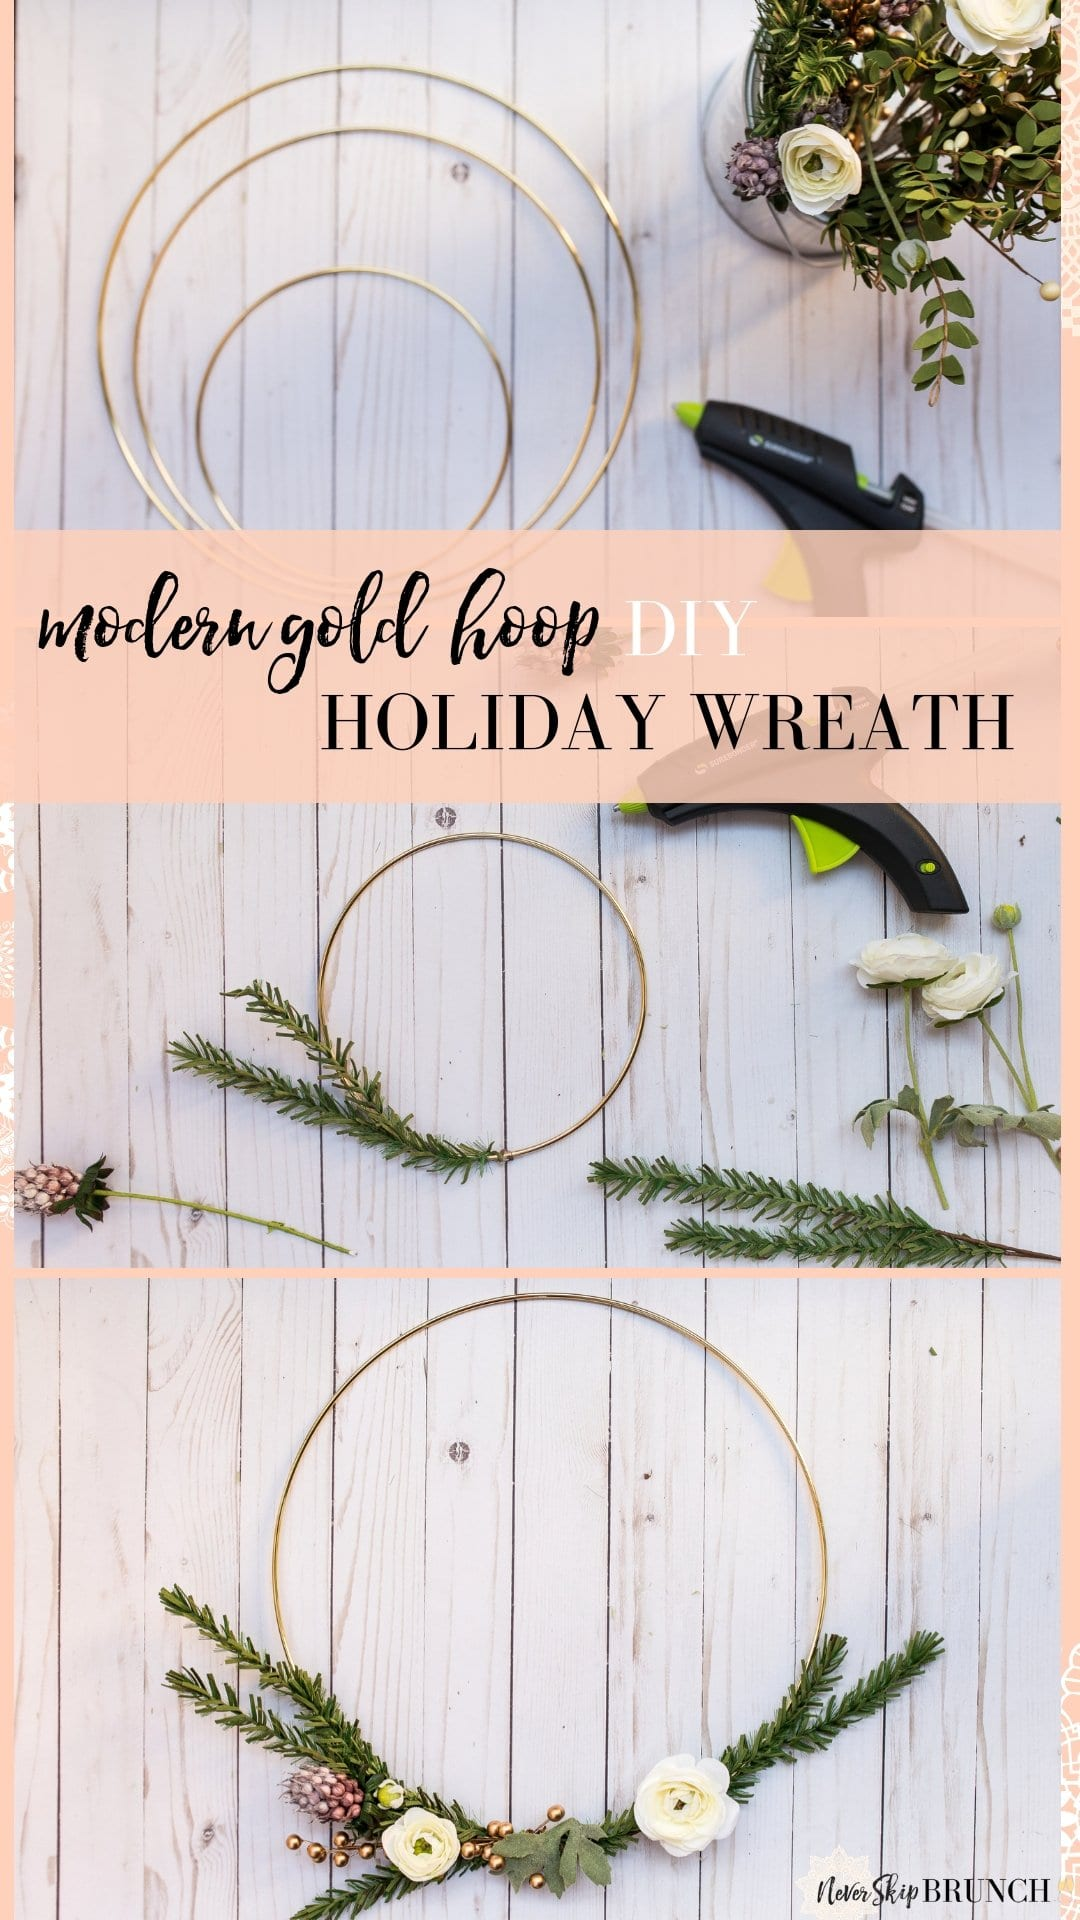 holiday wreaths diy christmas | christmas wreath gold hoop | how to make simple christmas wreath | christmas decor modern simple | holiday wreaths diy christmas simple | never skip brunch by cara newhart #decor #christmas #holiday